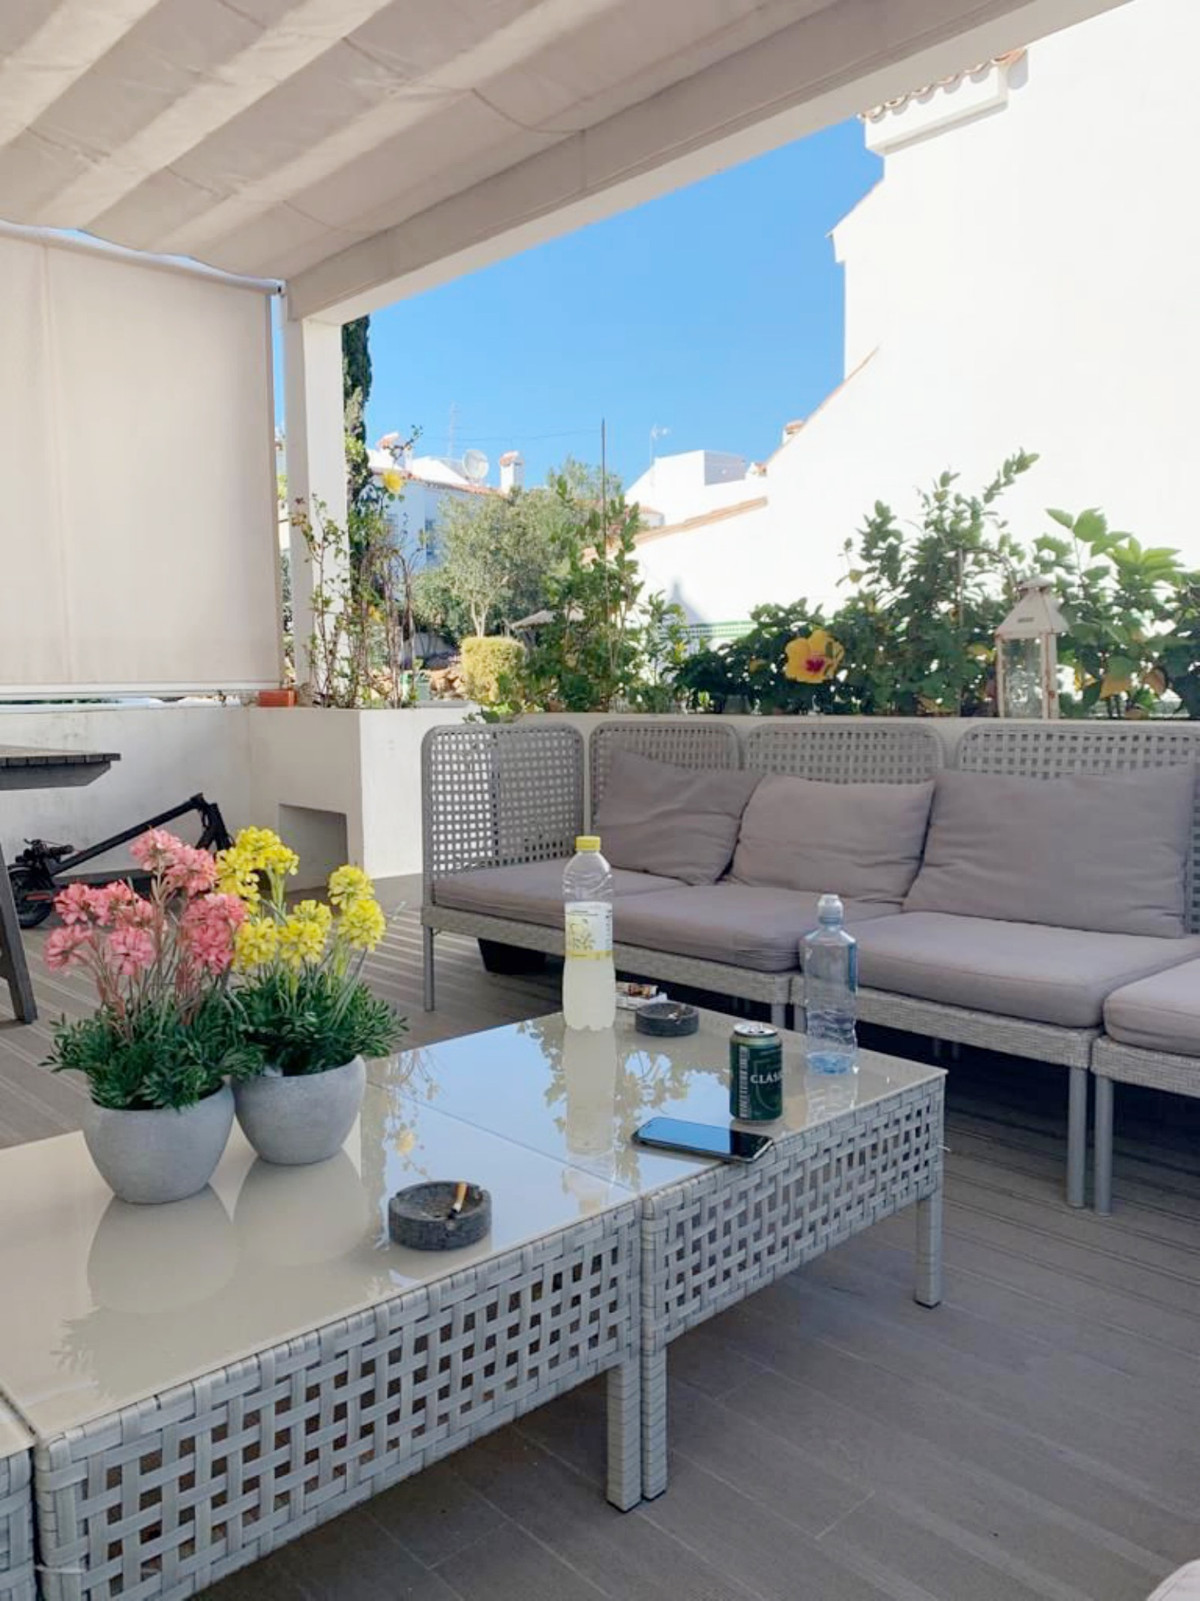 3 Bedroom Townhouse For Sale, Casares Playa